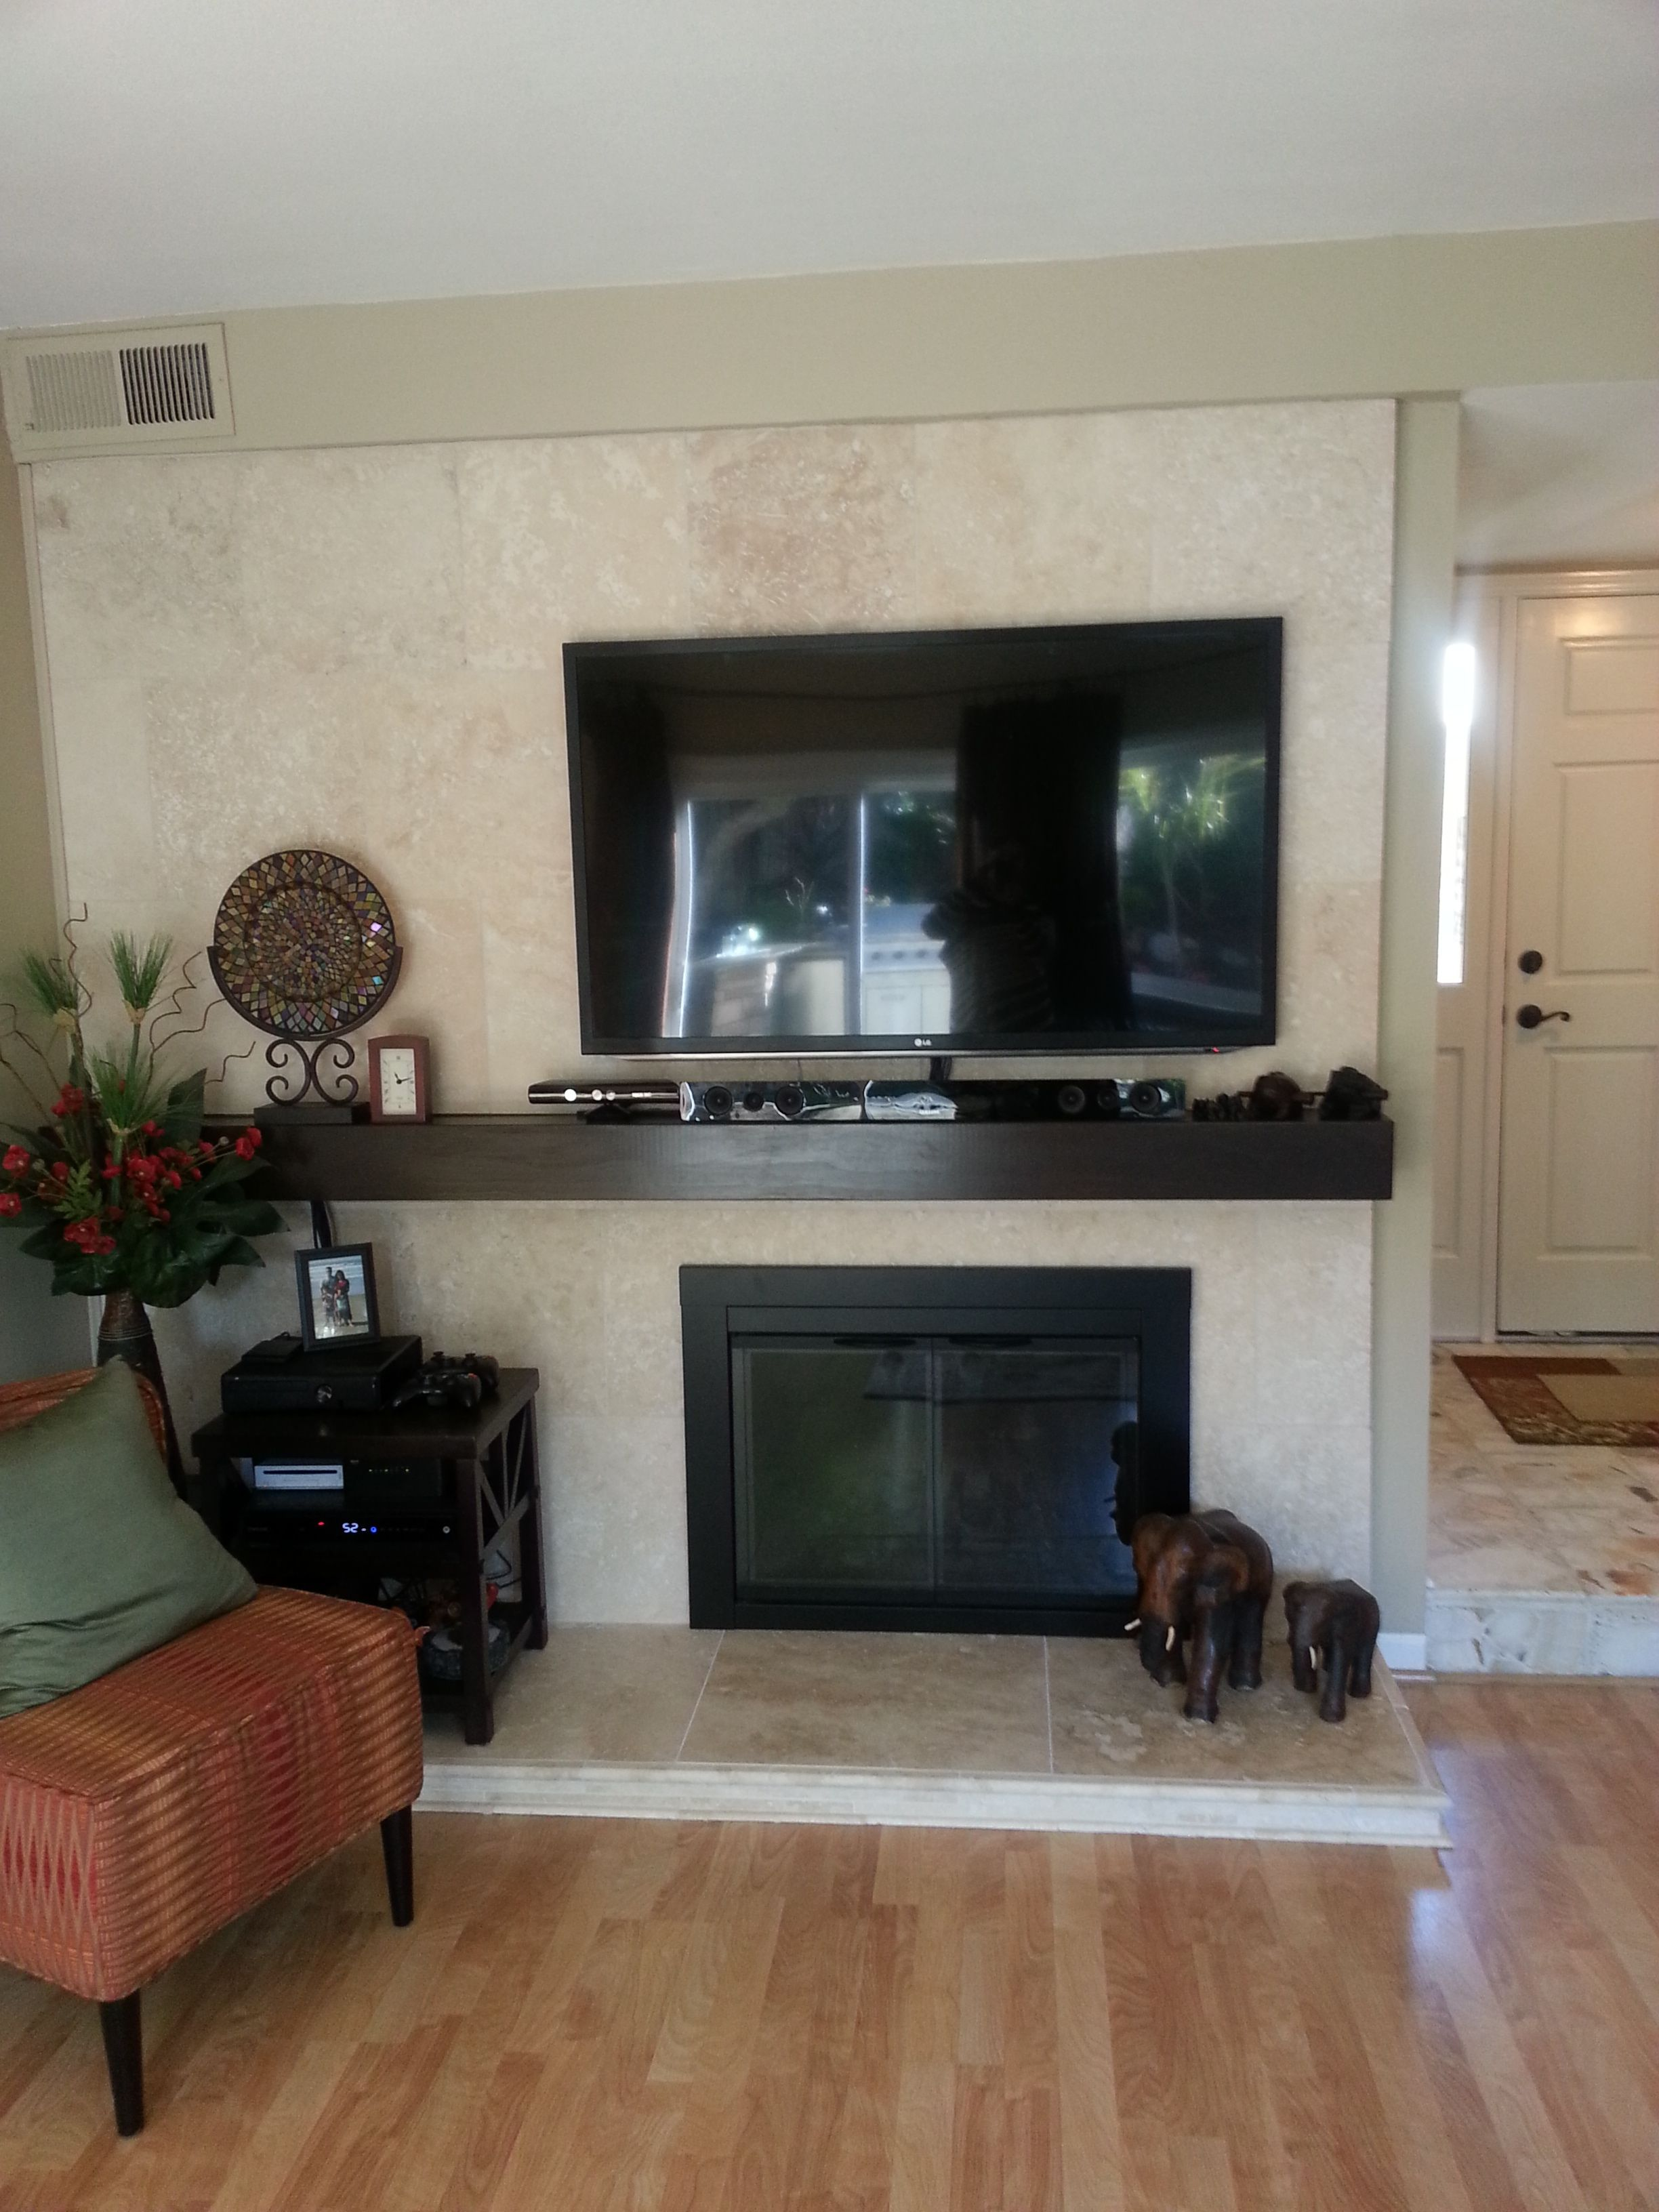 bc camera fireplace brock masonry photos digital victoria olympus ltd